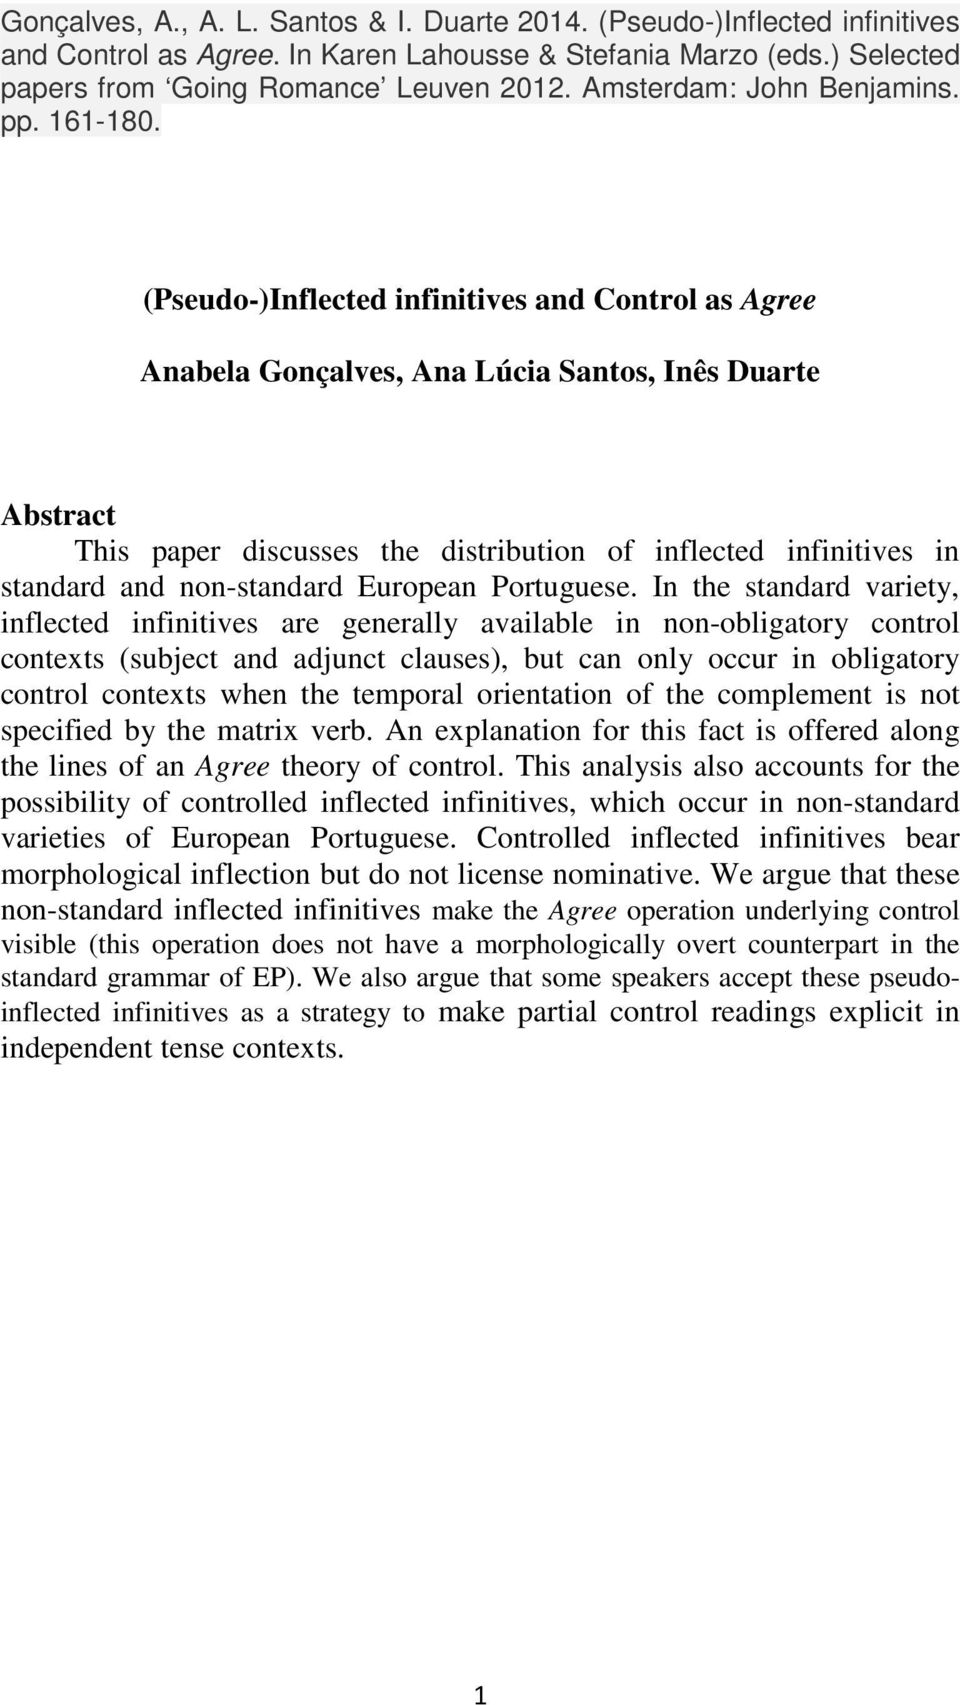 (Pseudo-)Inflected infinitives and Control as Agree Anabela Gonçalves, Ana Lúcia Santos, Inês Duarte Abstract This paper discusses the distribution of inflected infinitives in standard and